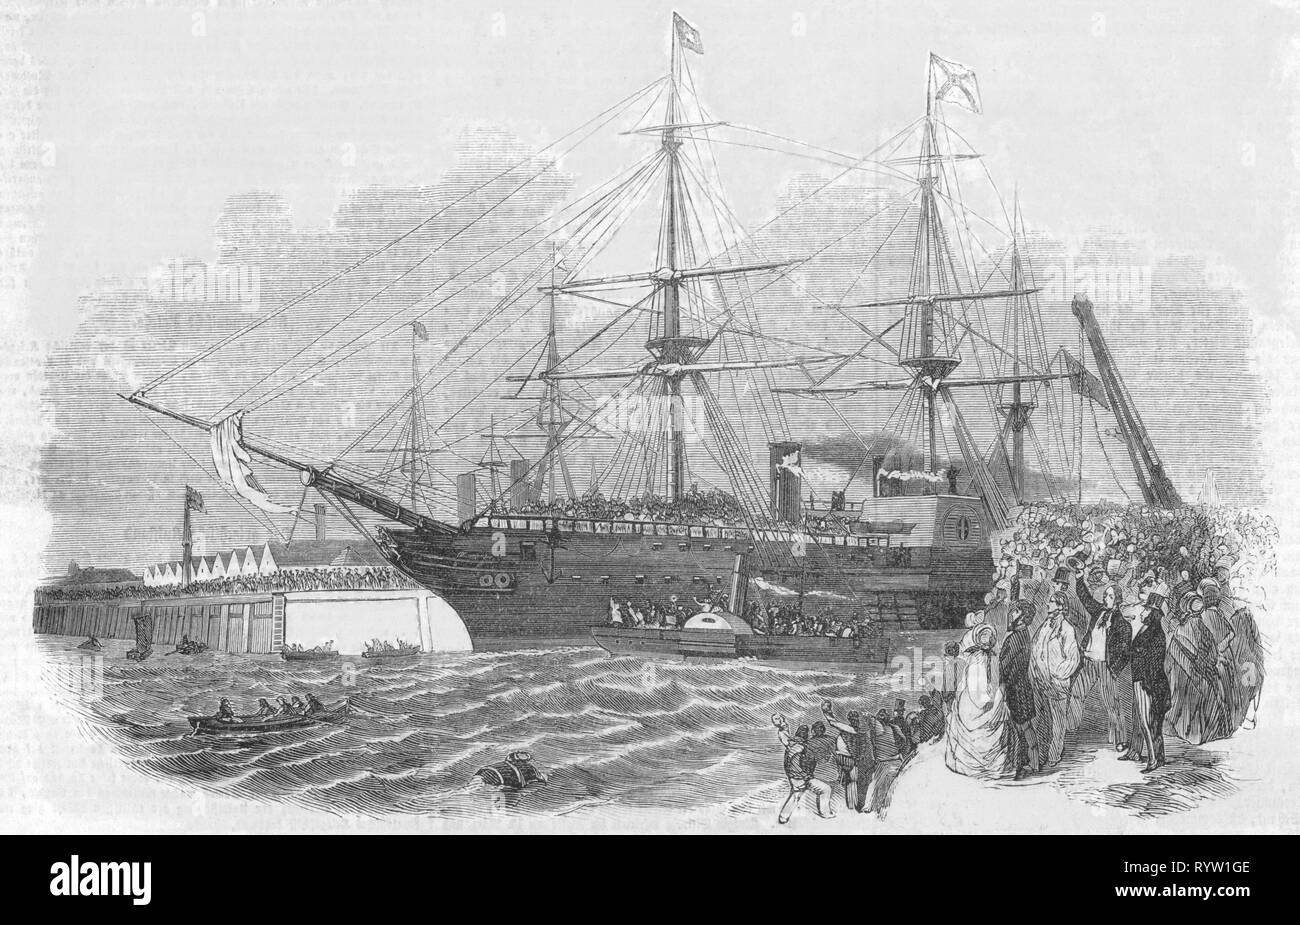 Crimean War 1853 - 1856, departure of the Coldstream Guards on the sail steamer 'Orinoco', Southampton, 1.3.1854, wood engraving, Germany, 18.3.1854, war, wars, guards, Guards Division, military, transportation, navigation, harbour, harbor, harbours, harbors, port, ports, ship, ships, steamer, steamers, steamship, steamships, troop transport, troops, people, jubilation, cheer, cheers, jubilate, jubilating, exaltation, war fever, Great Britain, United Kingdom, British empire, 19th century, departure, departures, historic, historical, Additional-Rights-Clearance-Info-Not-Available - Stock Image